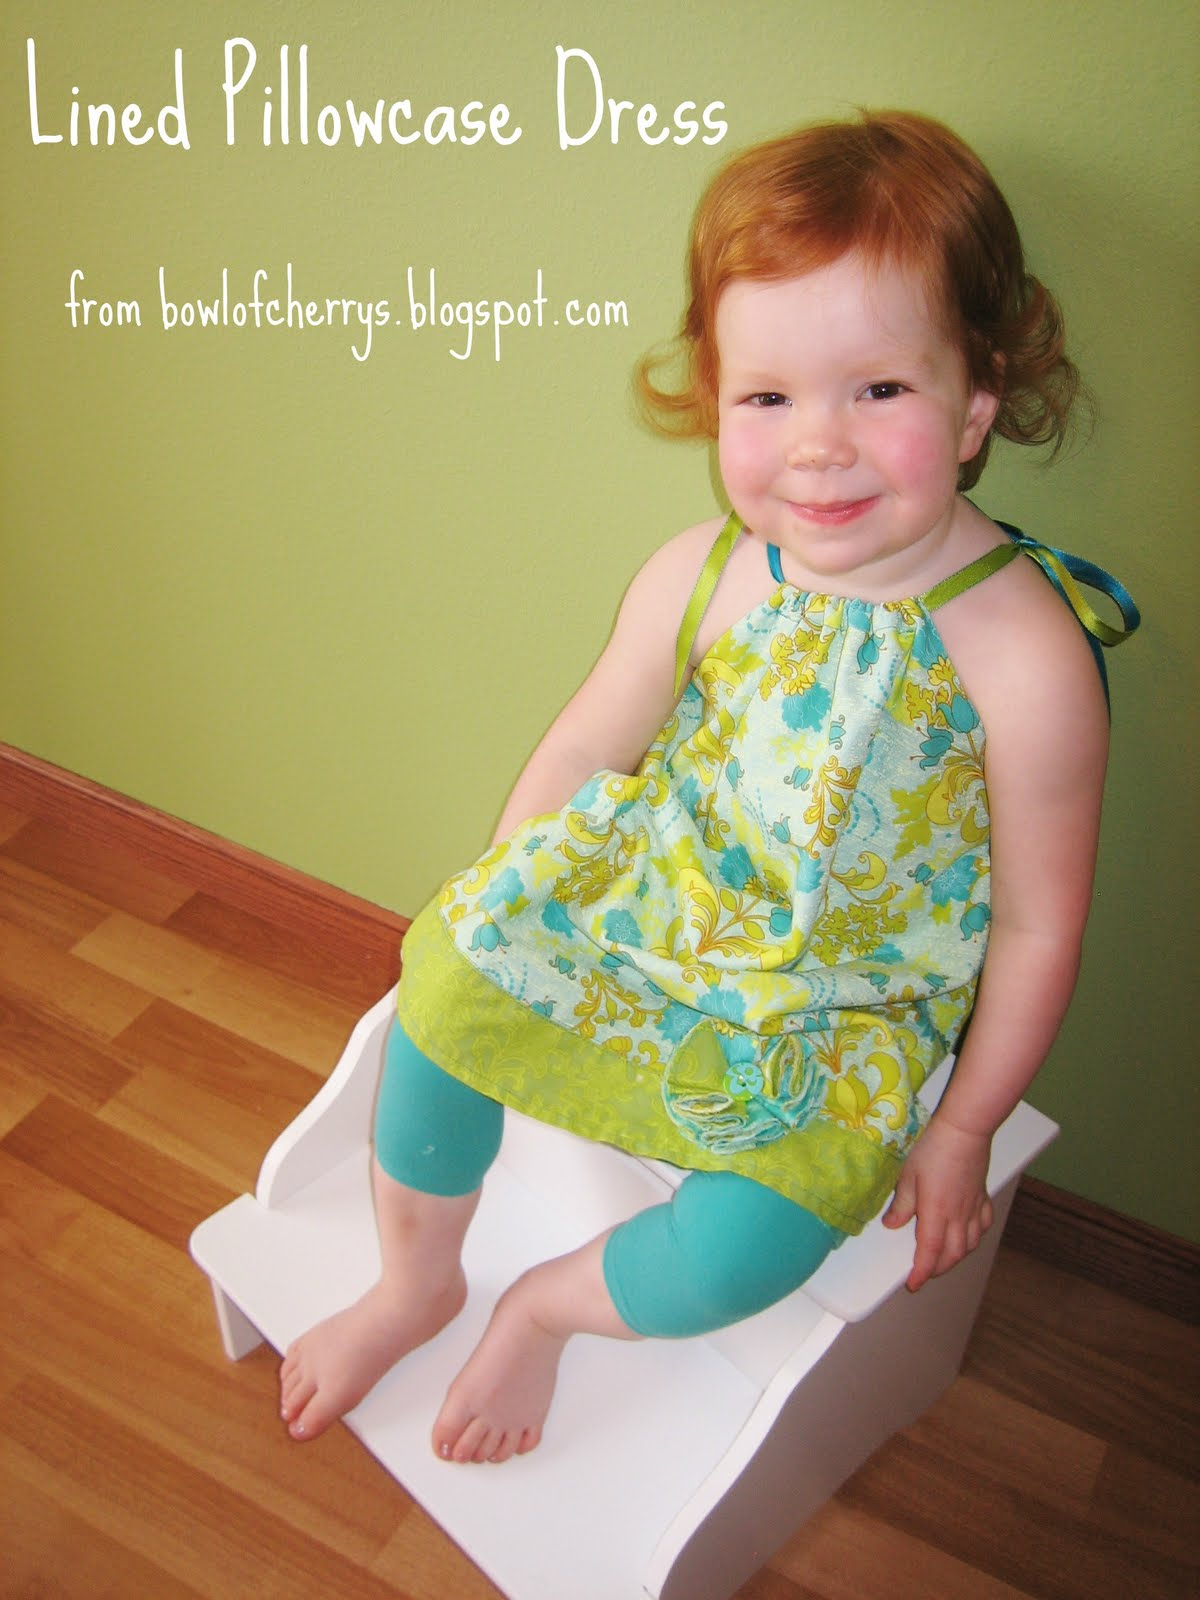 Tutorial Tuesday: Lined Pillowcase Dress